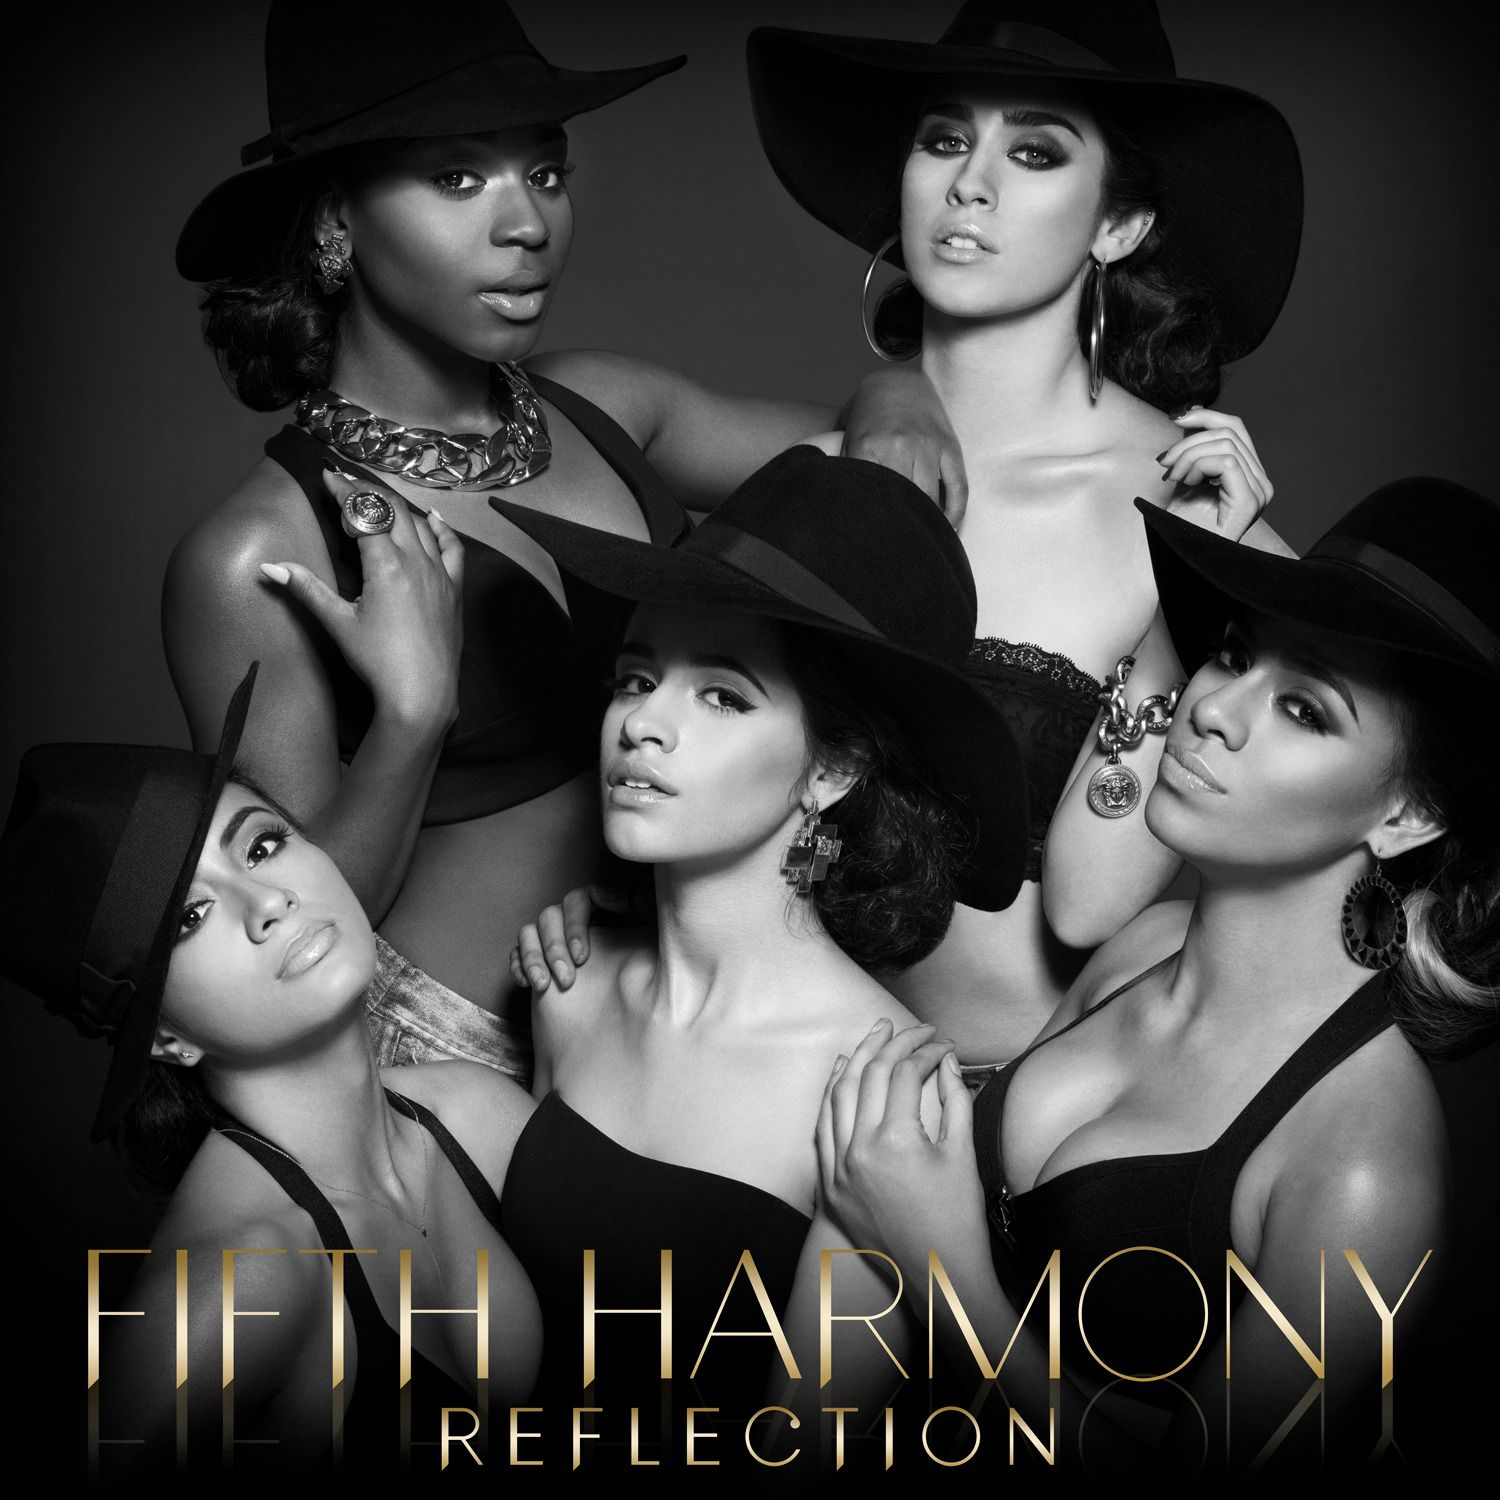 Fifth Harmony - Reflection album cover